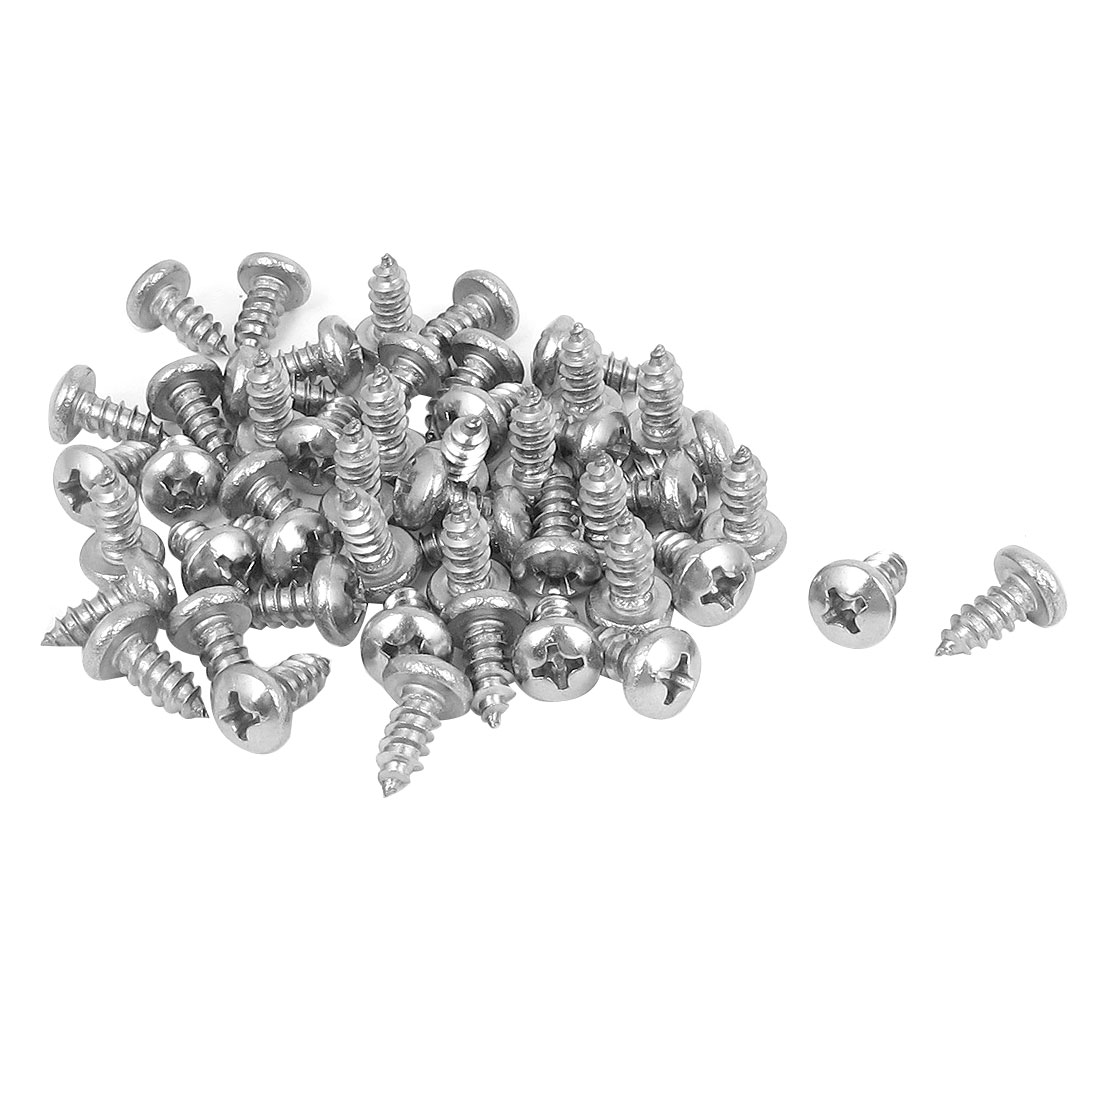 4.2mmx9.5mm Phillips Round Head Sheet Metal Self Tapping Drilling Screws 50pcs